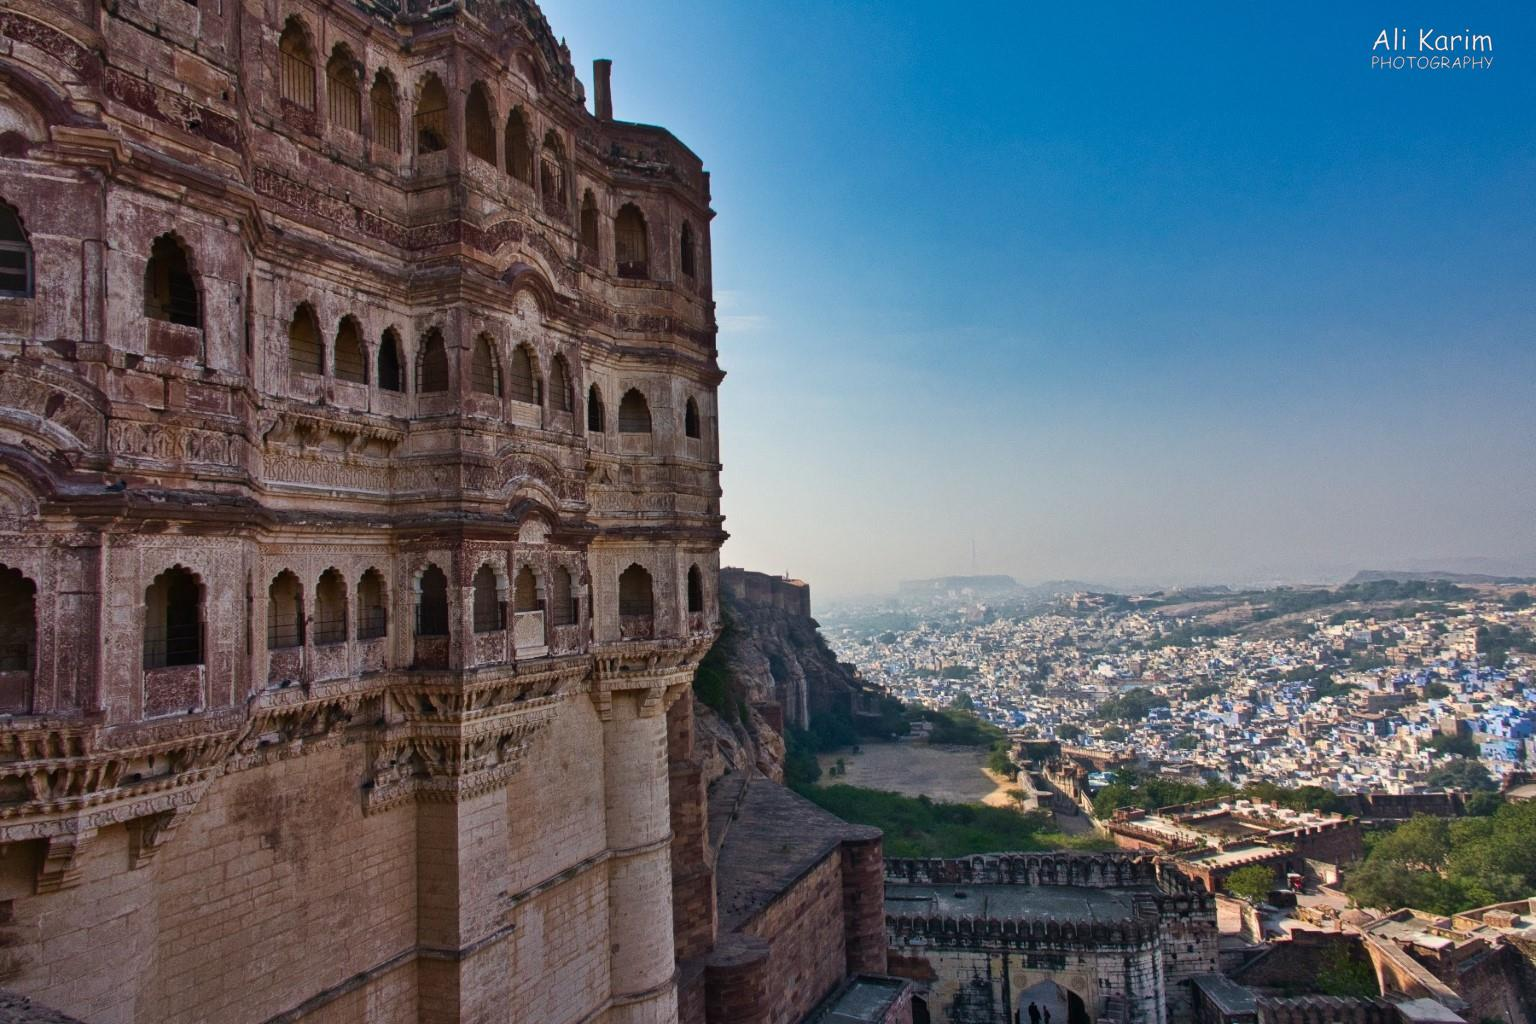 Jodhpur, Rajasthan One part of the huge Meharanghar fort/palace; towering over the old blue city of Jodhpur